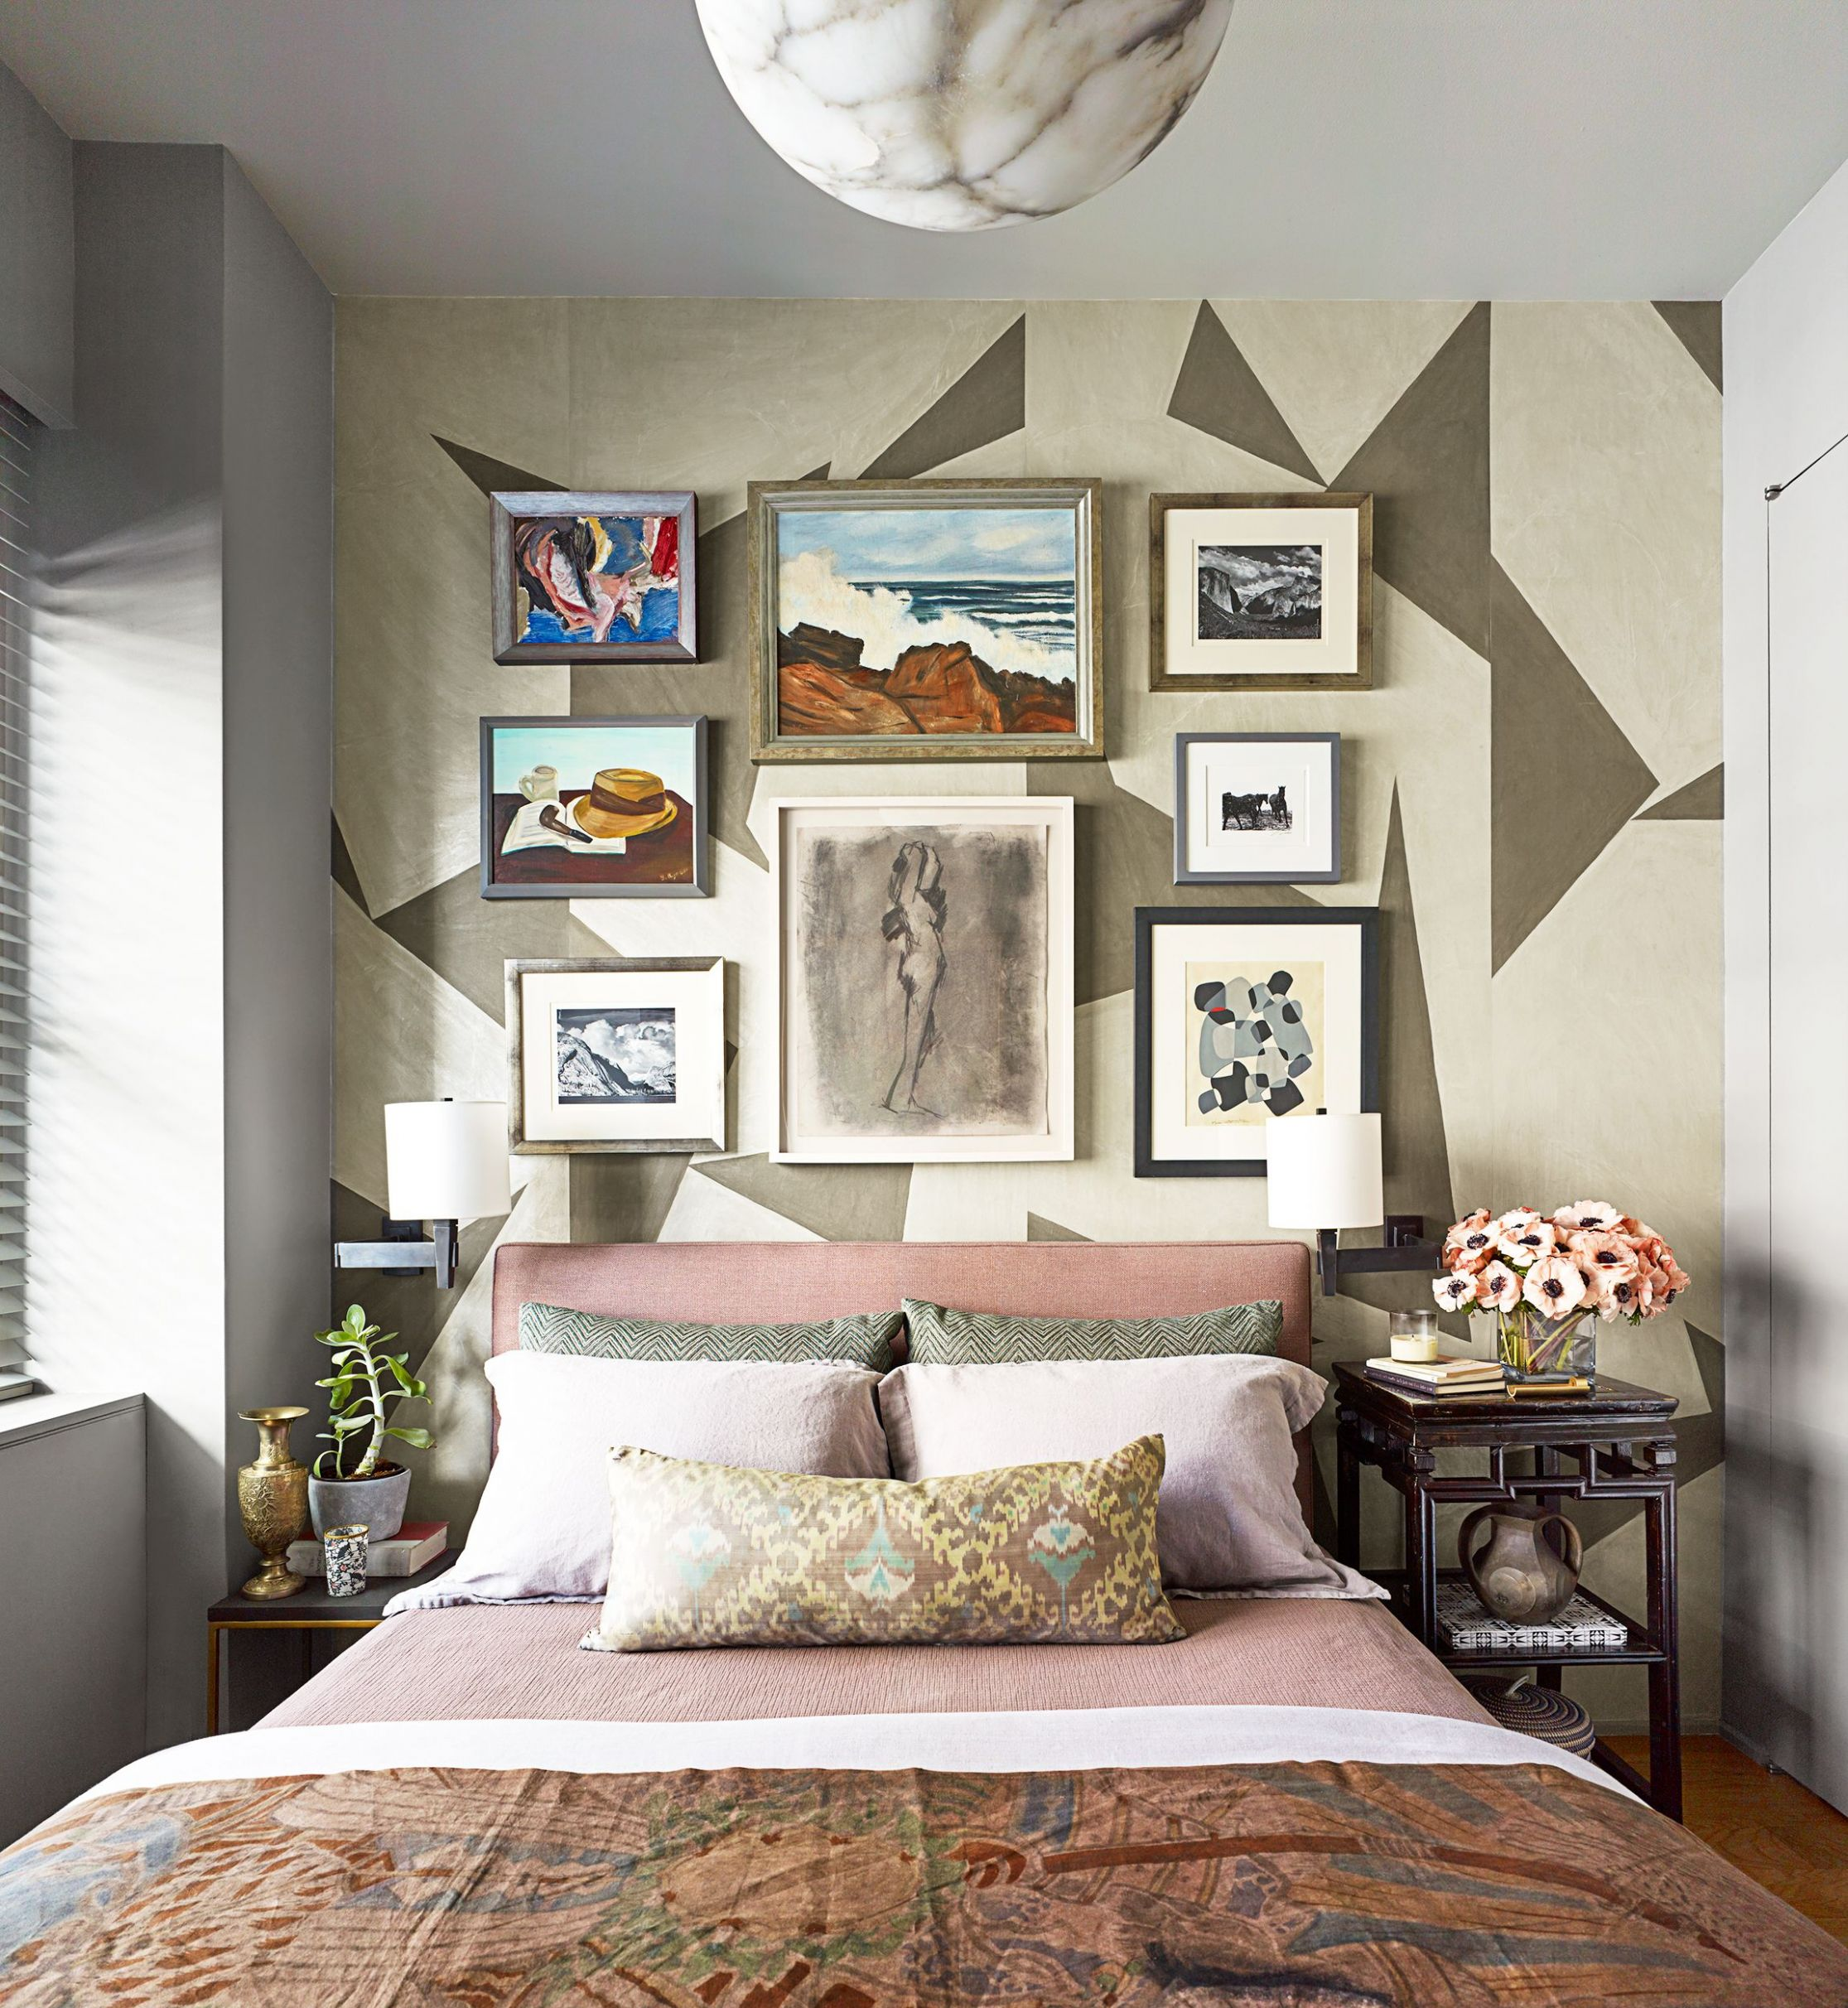 12 Small Bedroom Design Ideas - How to Decorate a Small Bedroom - small bedroom ideas 9 x 11